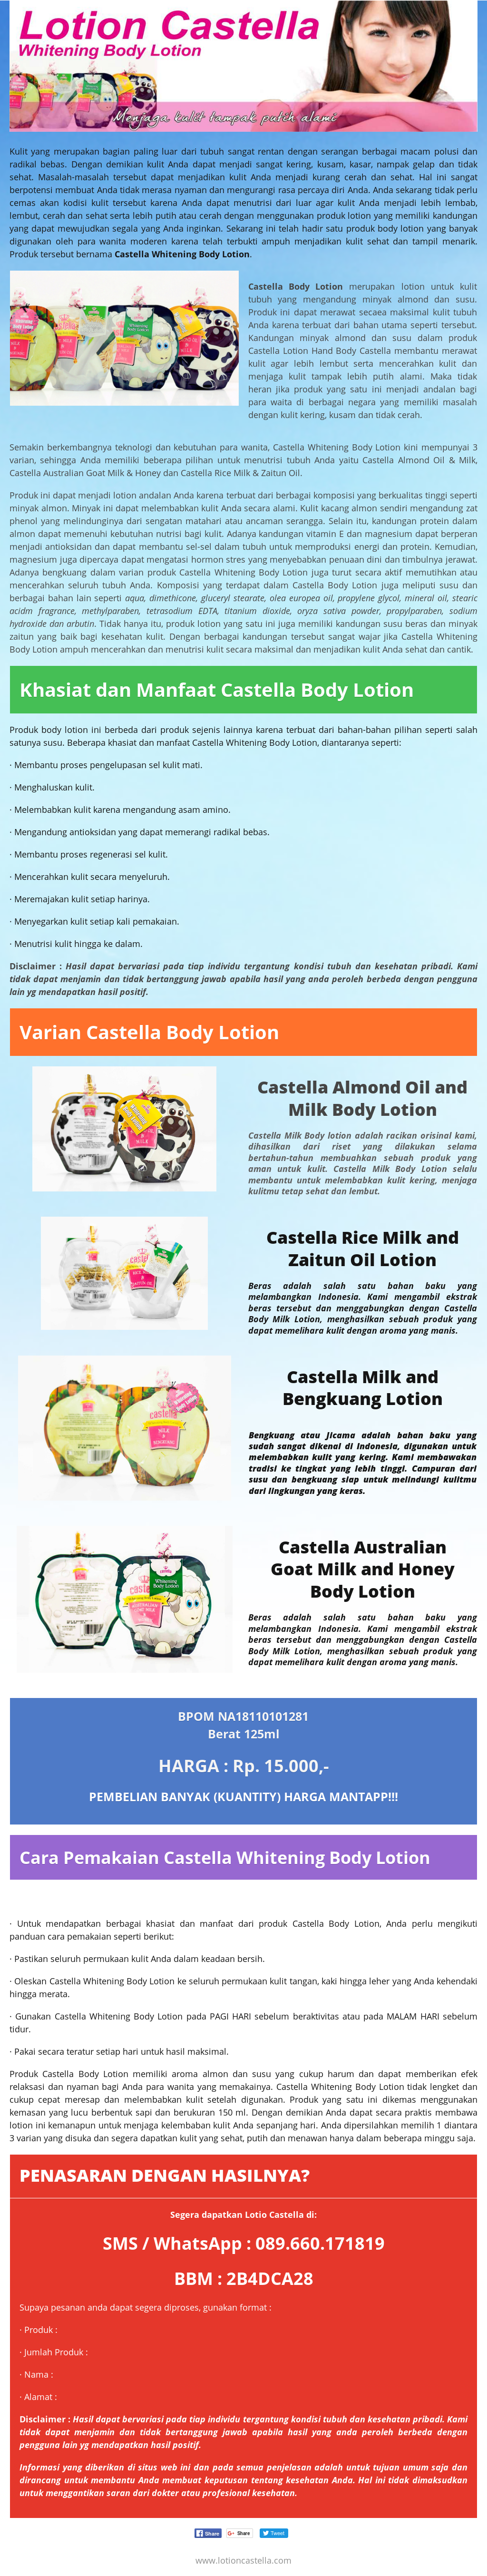 Lotioncastella Competitors Revenue And Employees Owler Company Castella Whitening Body Lotion Profile